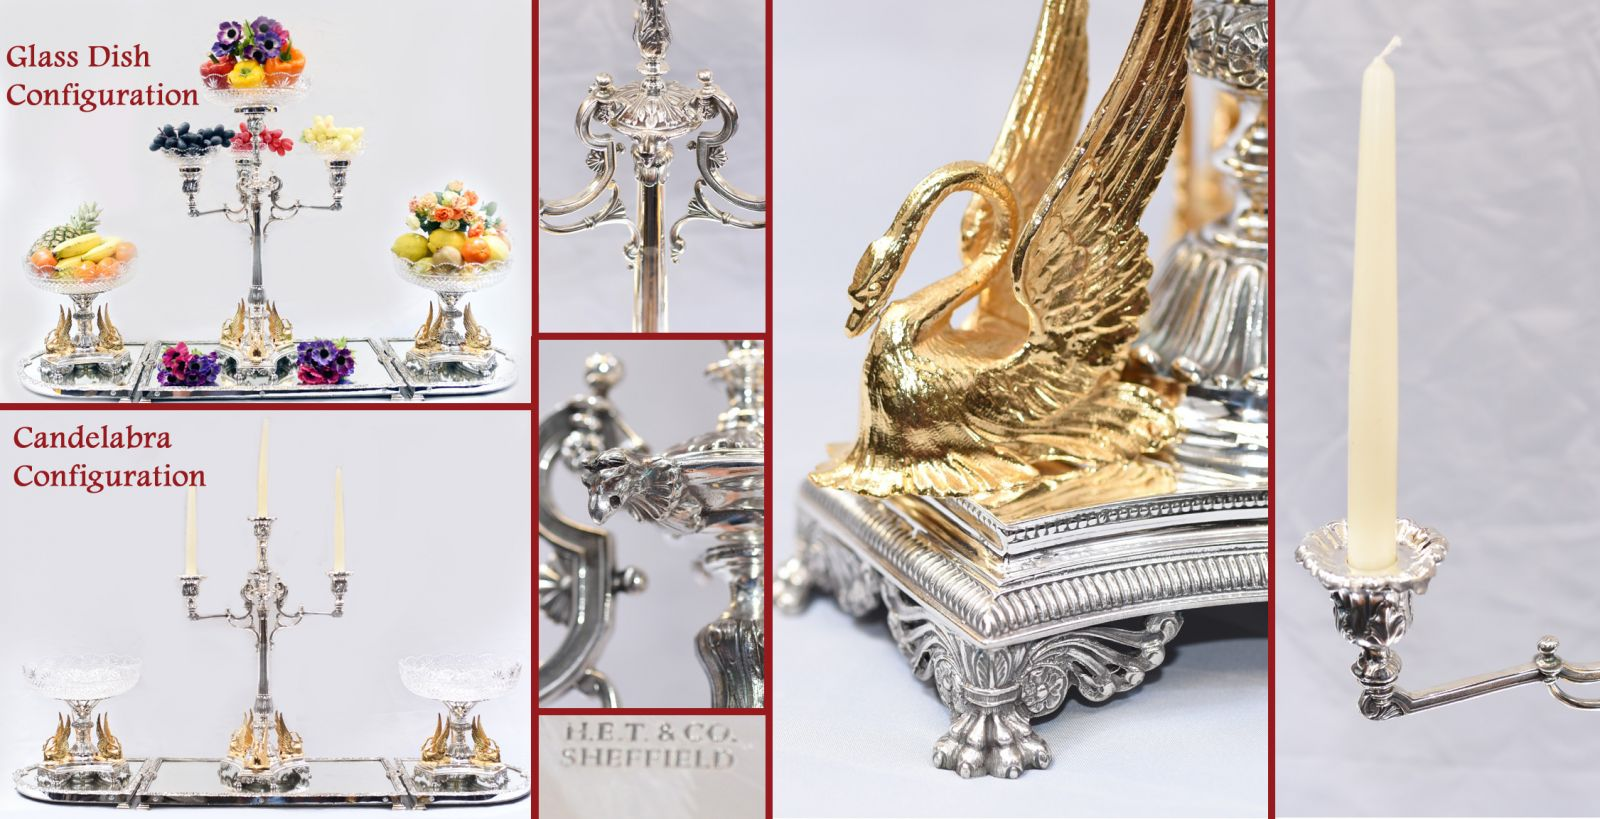 Sheffield silver plate epergne converts from candelabra to glass dish